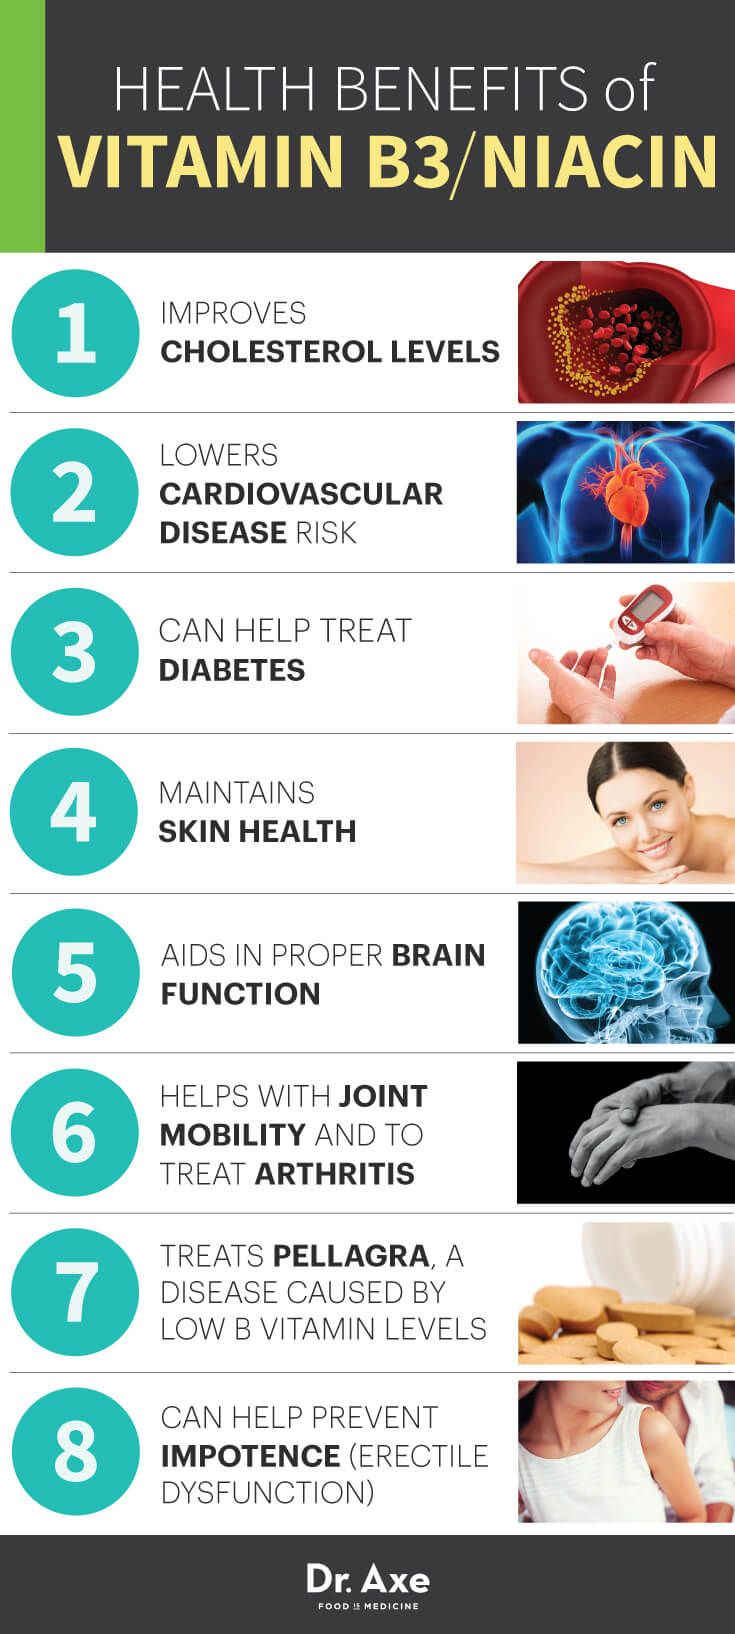 Vitamin B3 and Niacin Health Benefits Infographic list